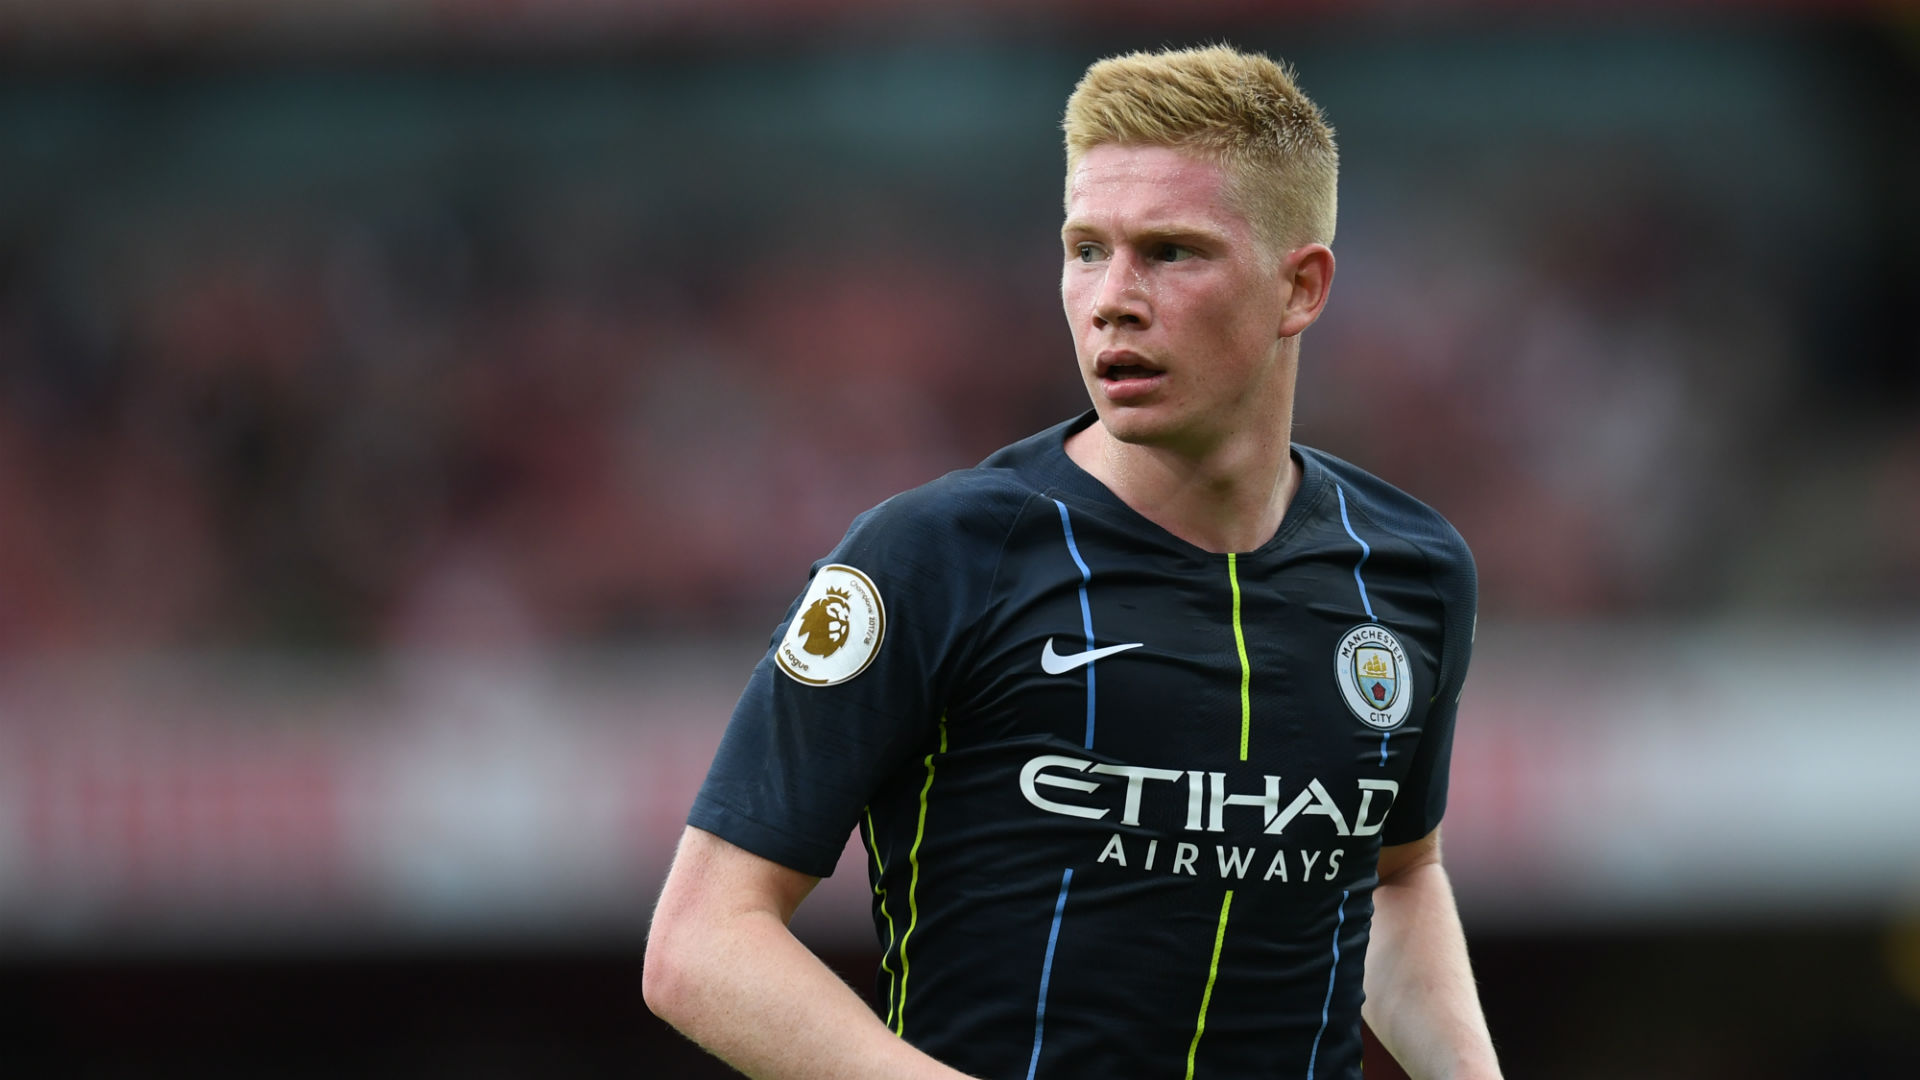 Goals, assists, set-pieces - The stats that show De Bruyne is almost irreplaceable for City